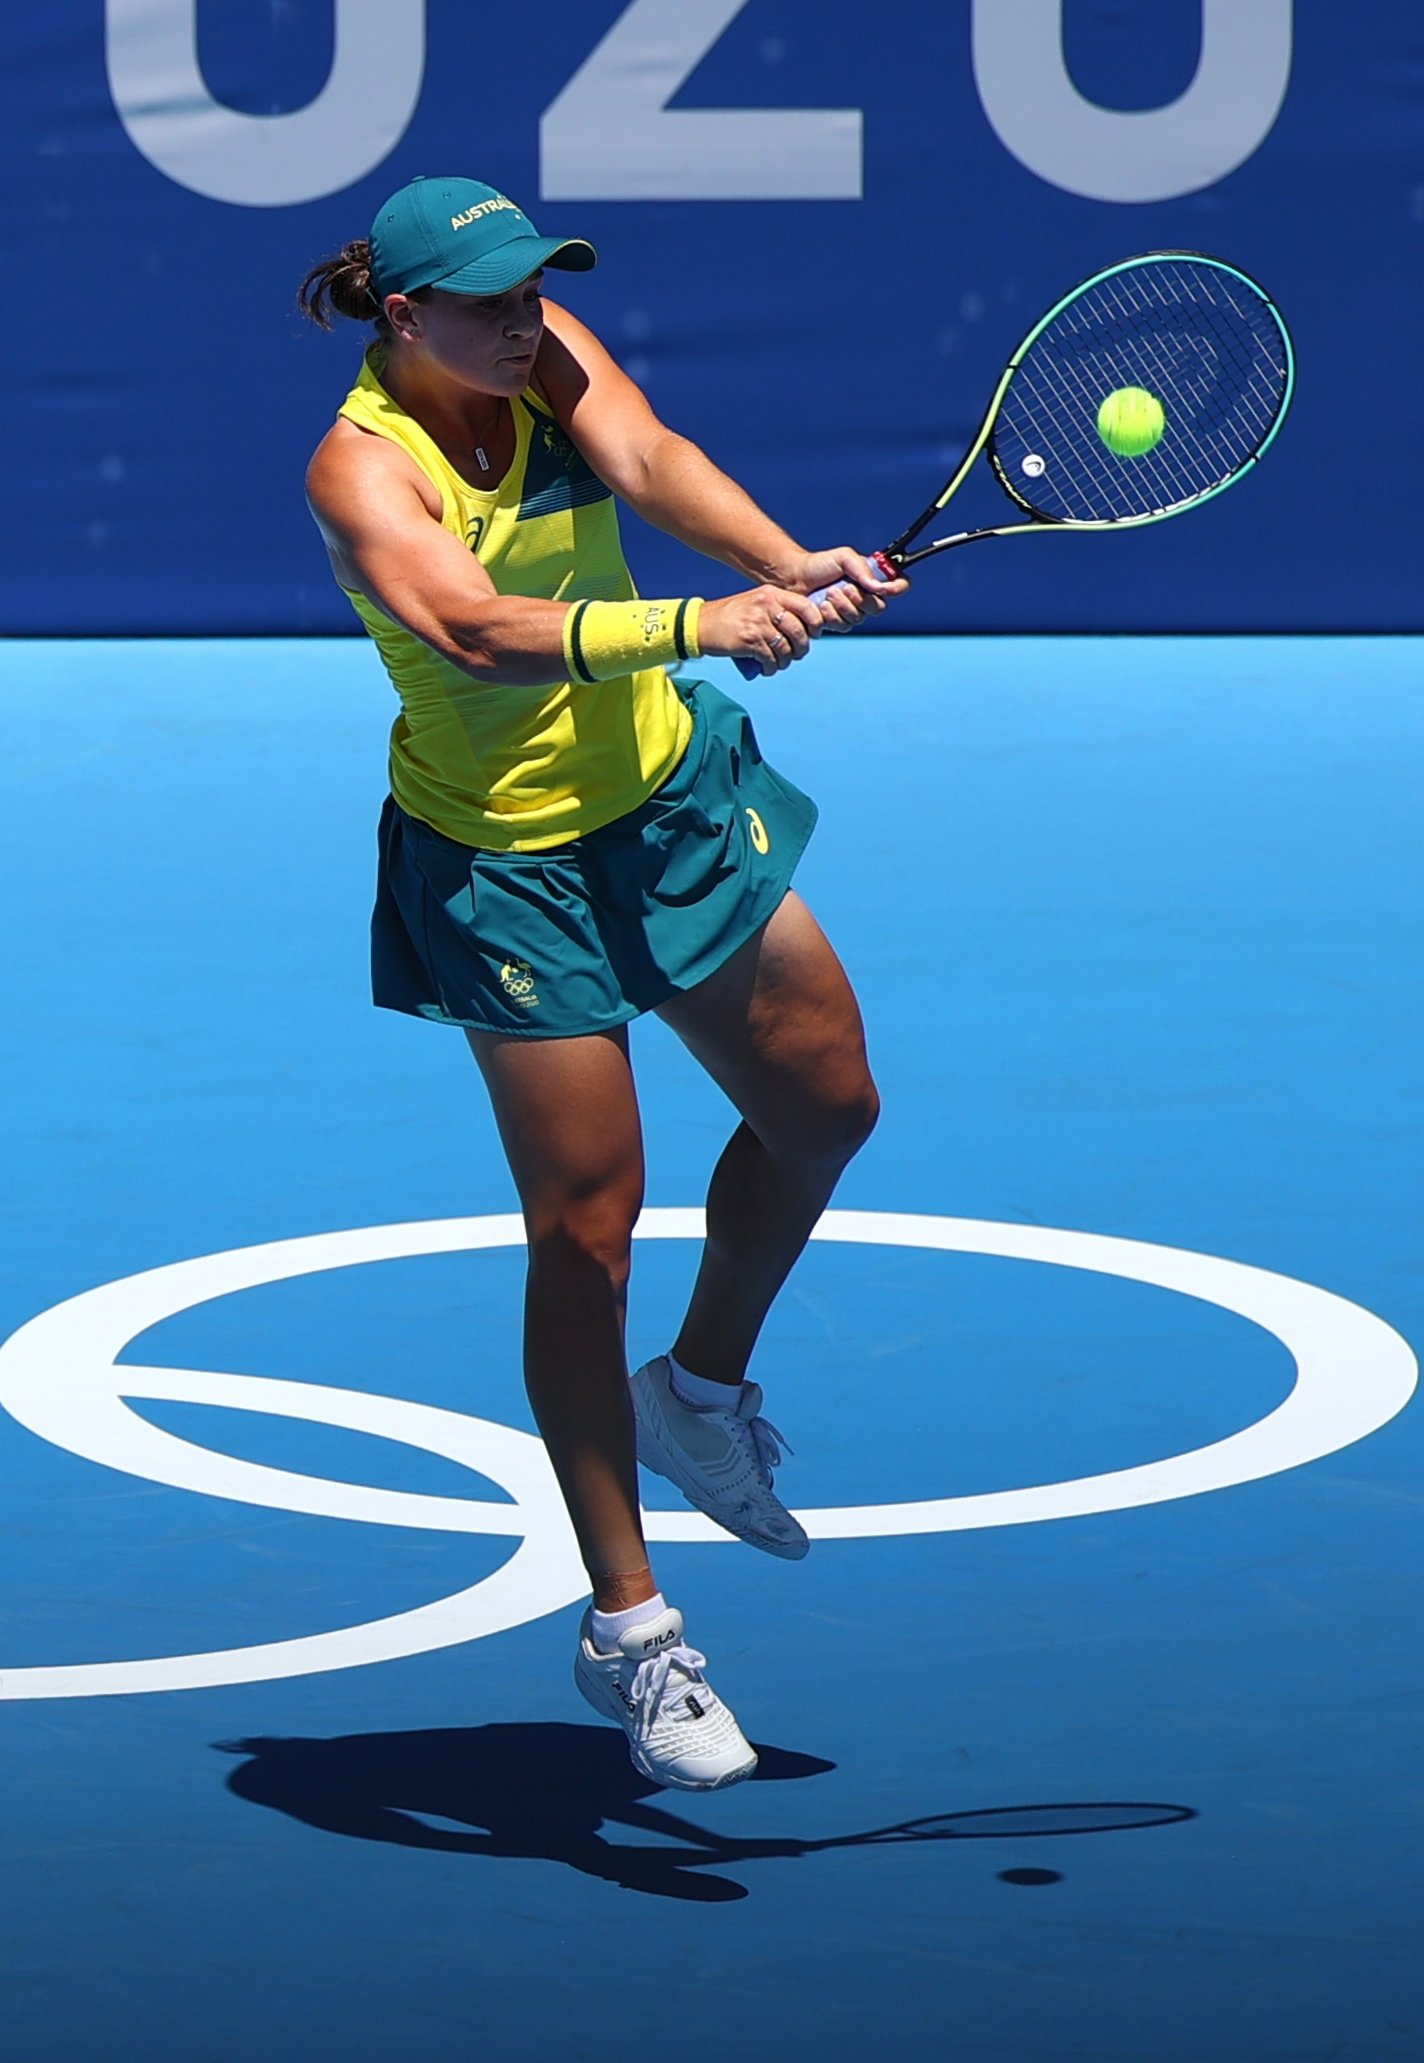 Australia's Ashleigh Barty in action during her Tokyo Olympics first-round match against Spain's Sara Sorribes, Ariake Tennis Park, Tokyo, Japan, July 25, 2021.